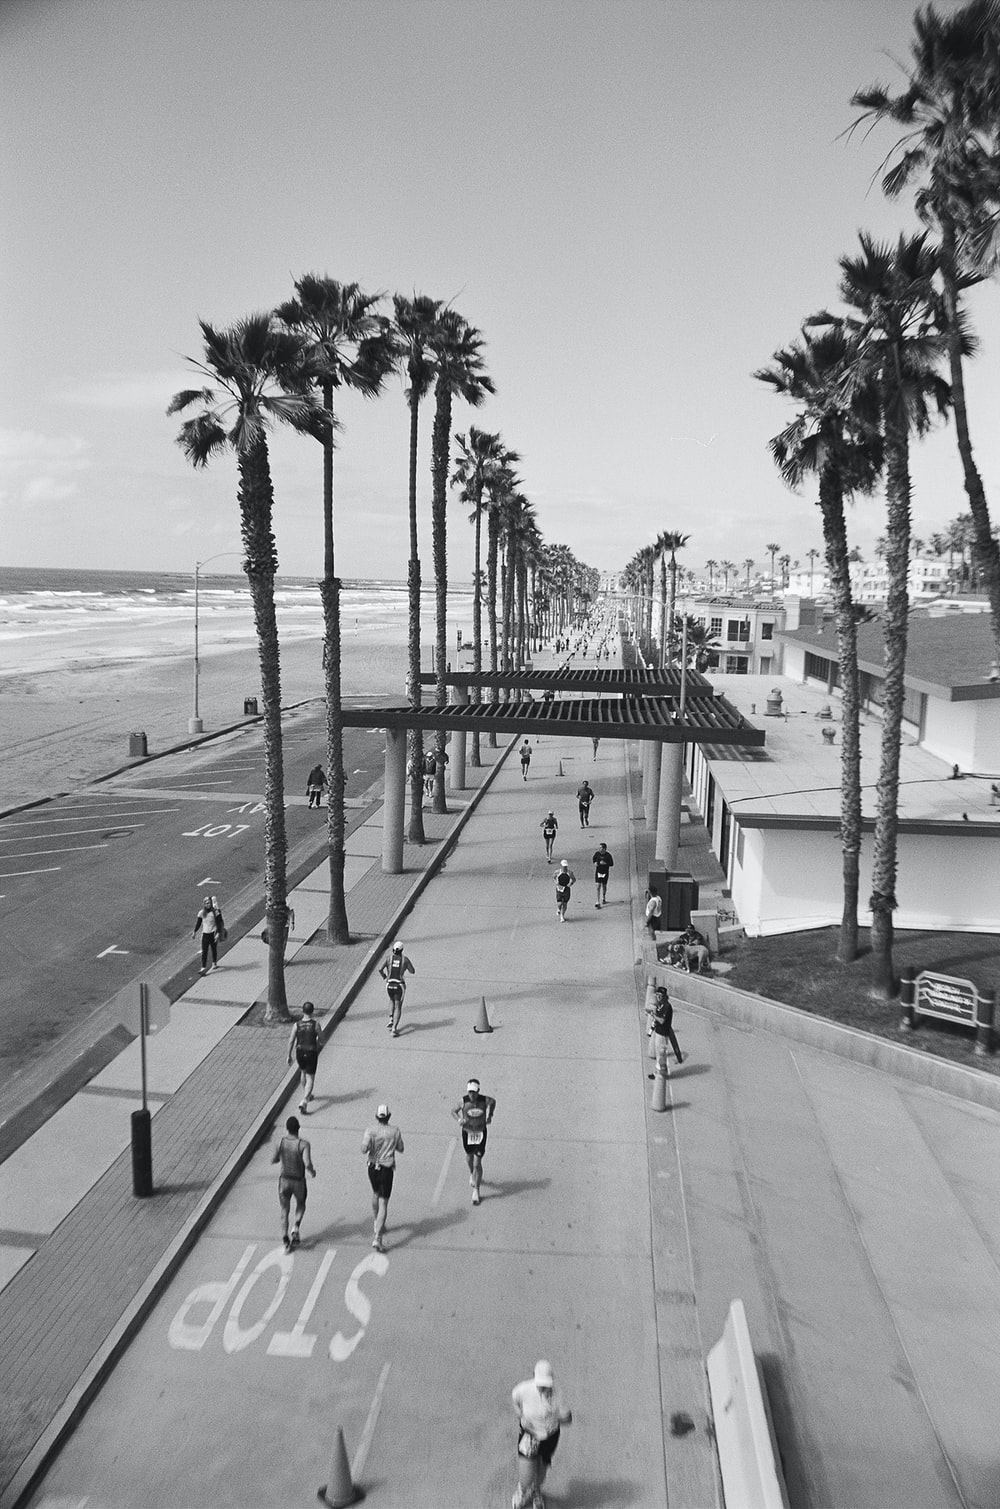 grayscale photo of people running near body of water